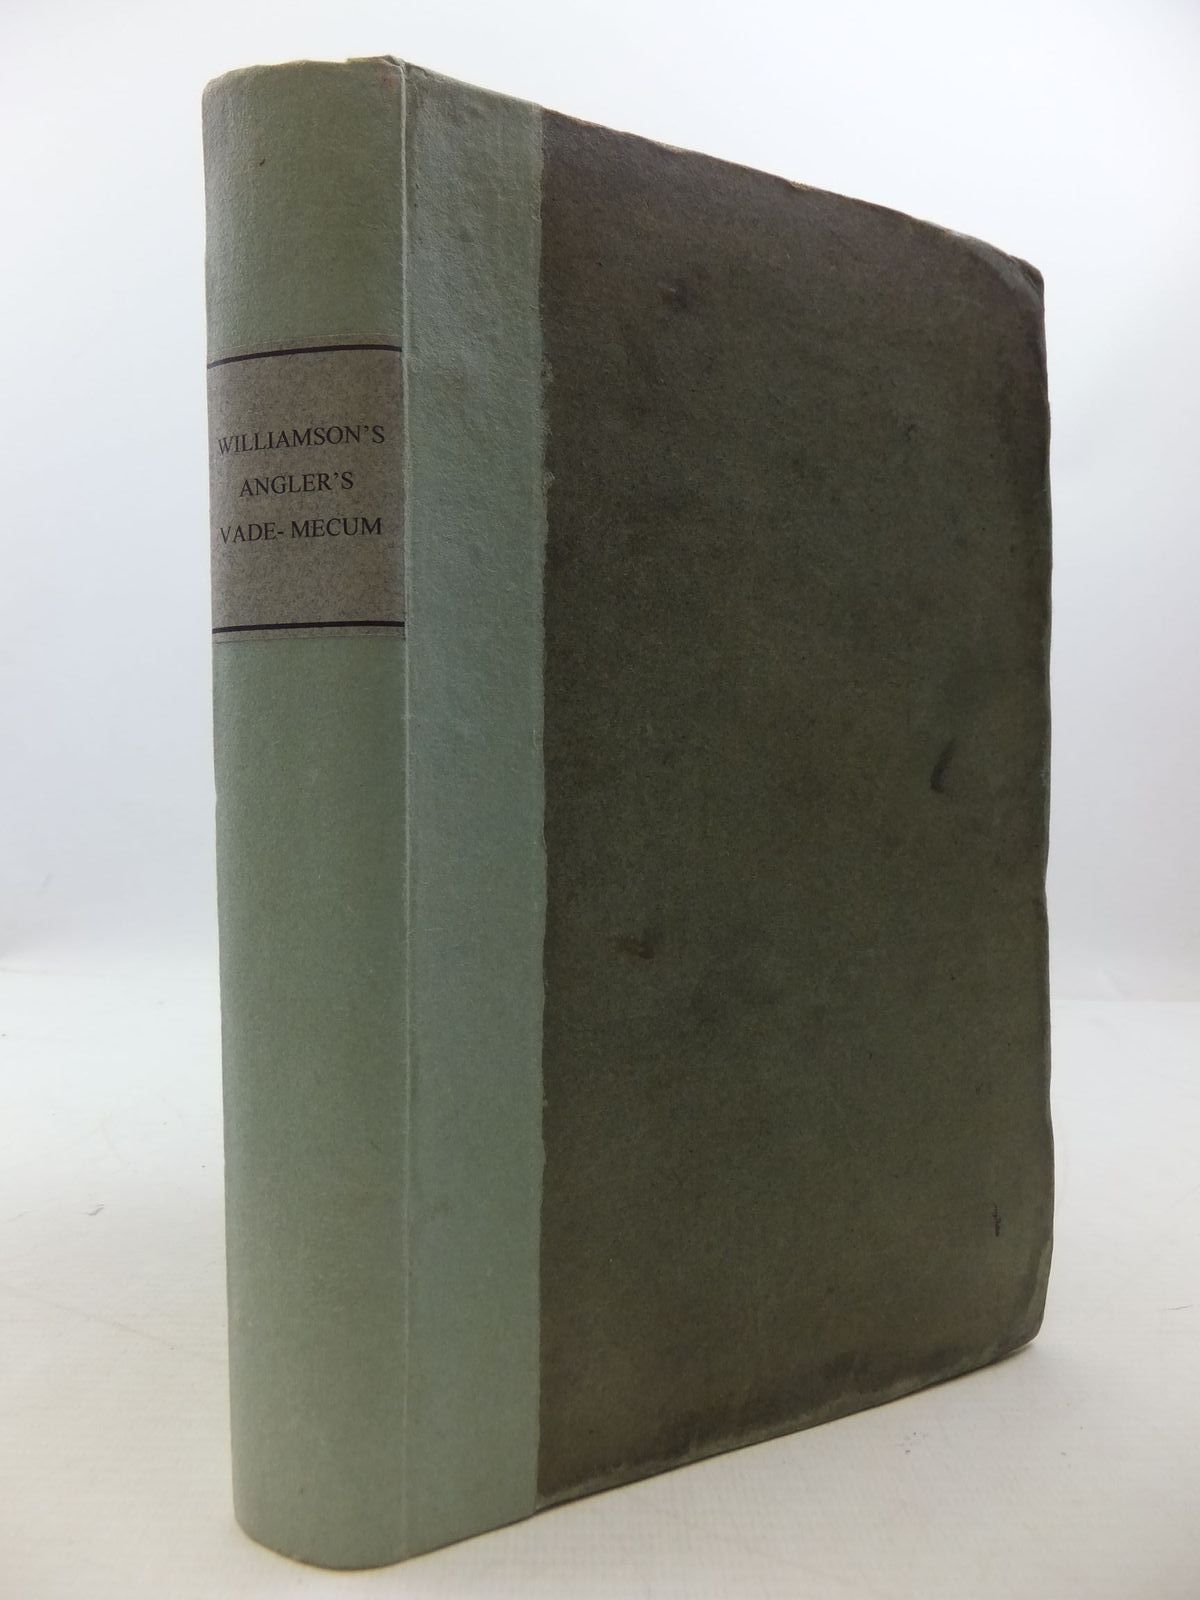 Photo of THE COMPLETE ANGLER'S VADE-MECUM written by Williamson, Capt. T. published by Payne And Mackinlay (STOCK CODE: 1807687)  for sale by Stella & Rose's Books